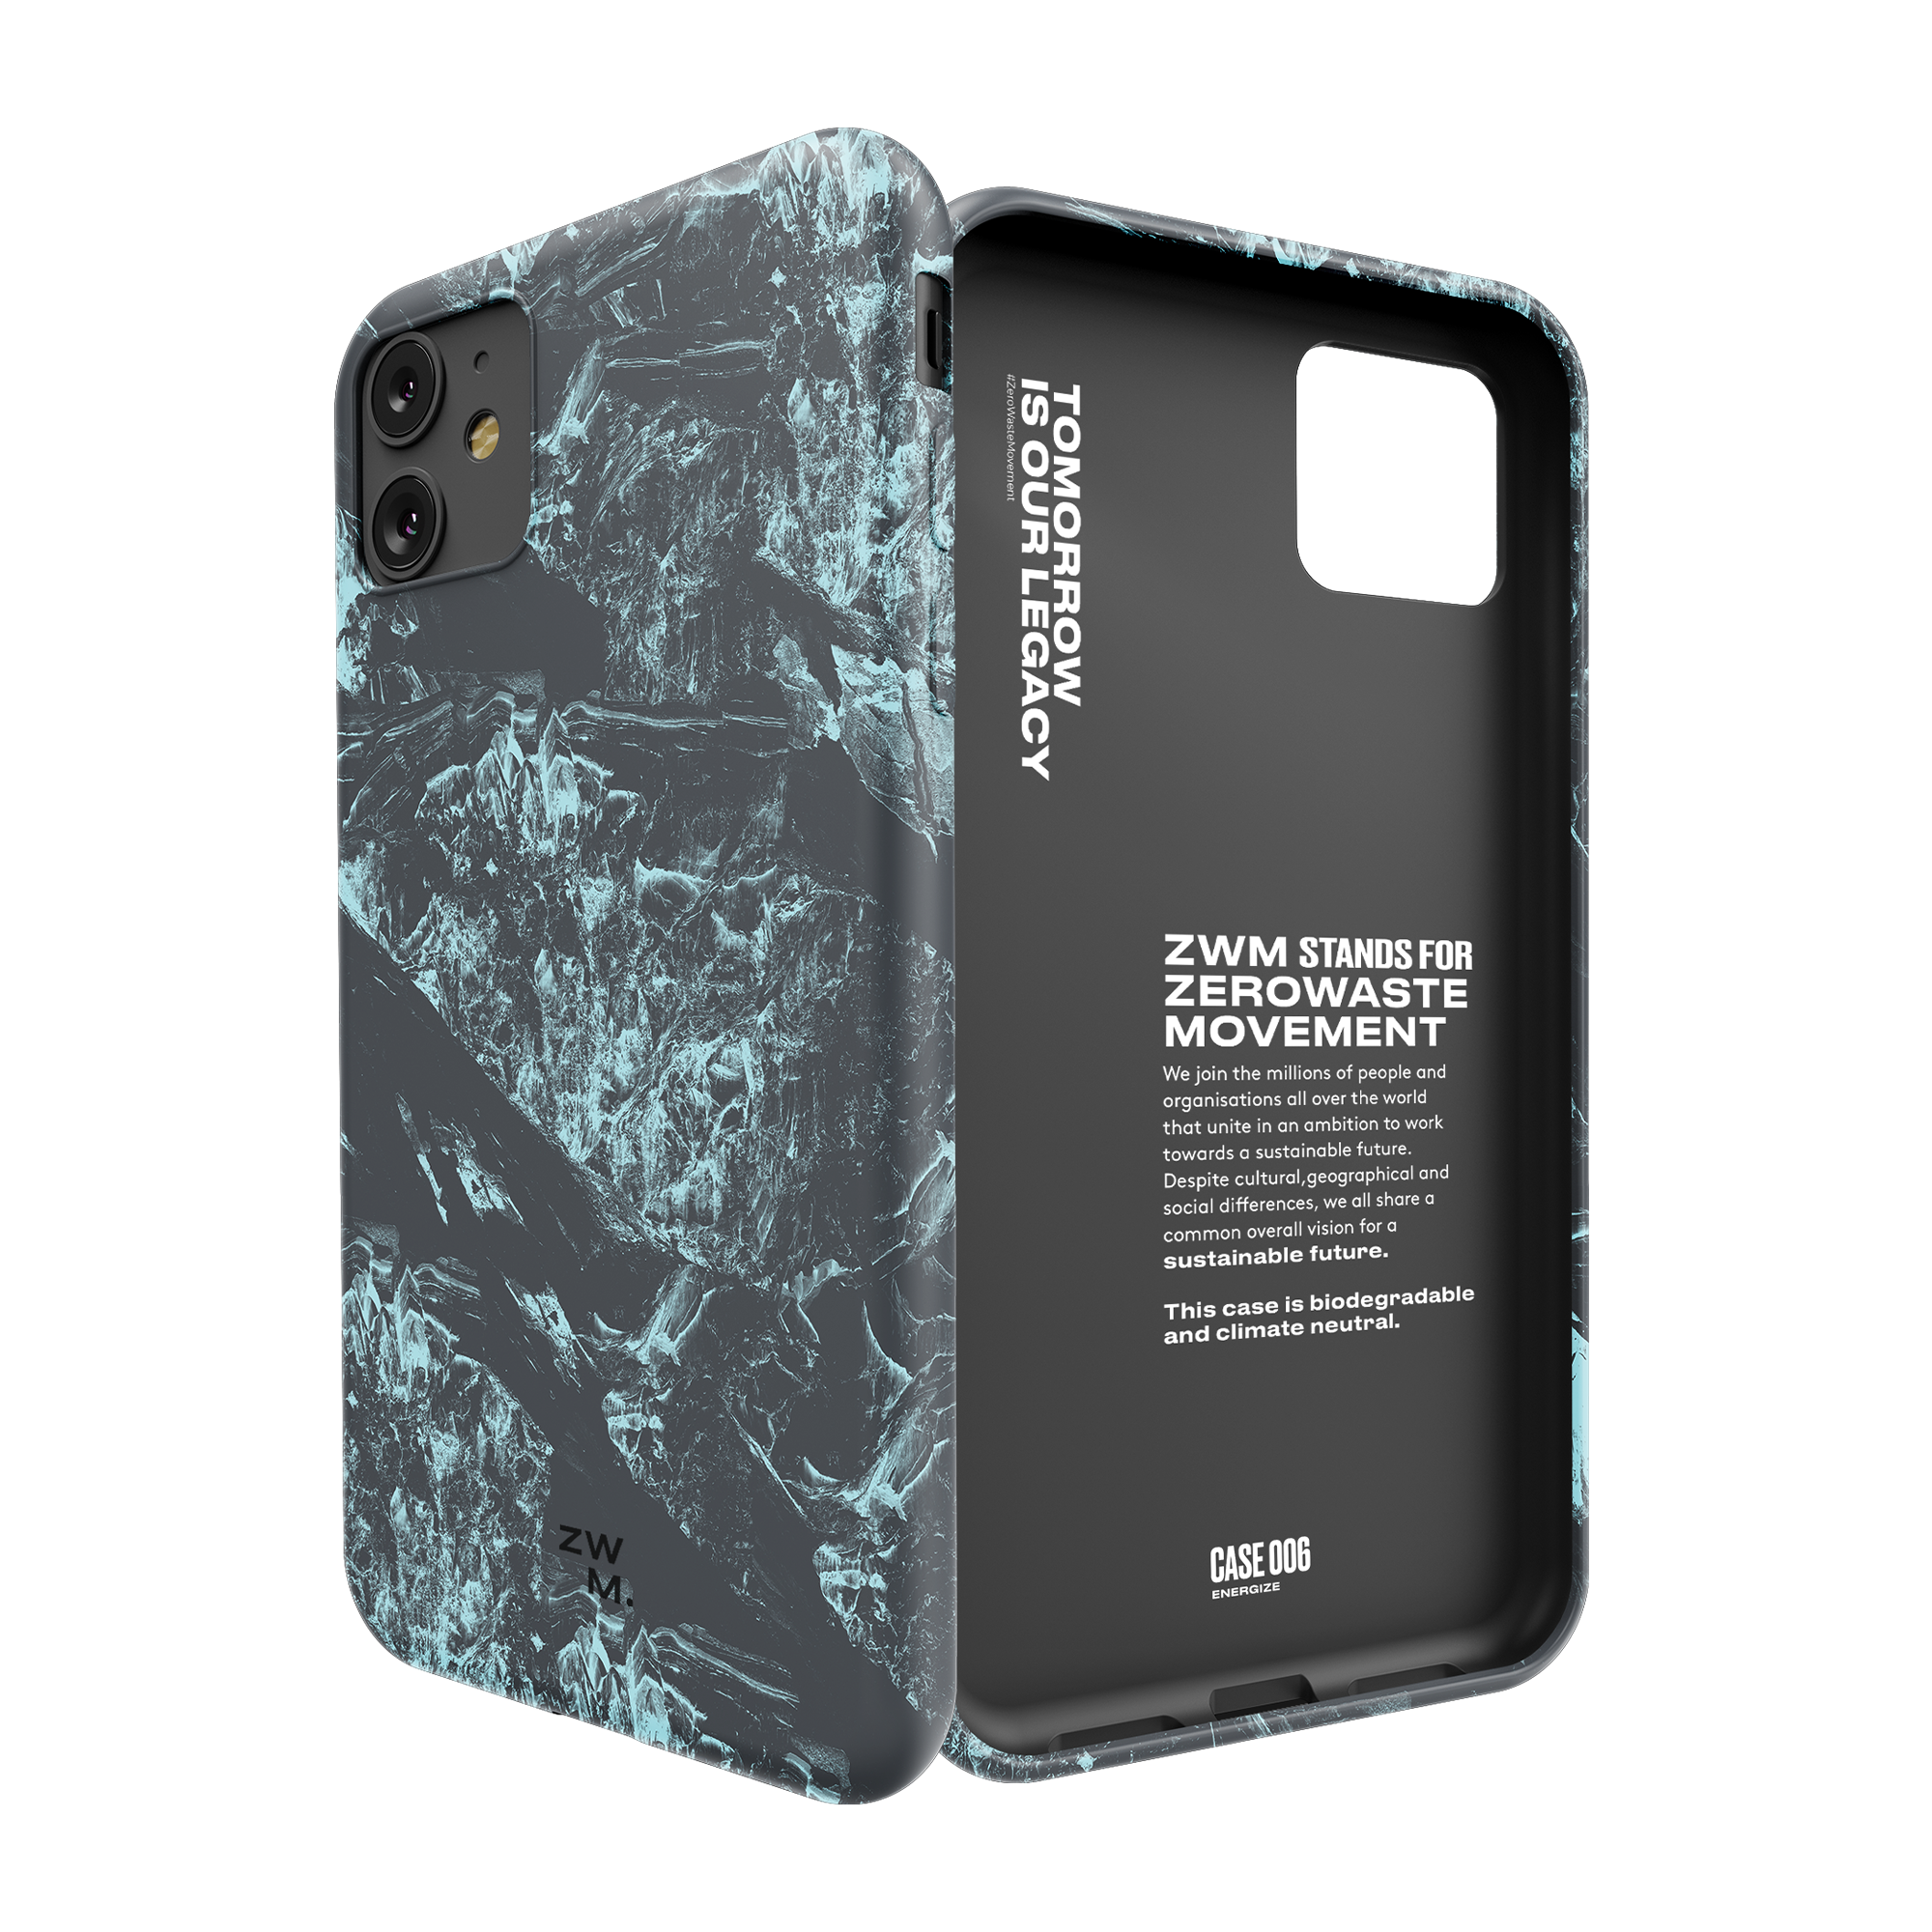 Eco friendly phone case for iPhone 11 - Energize